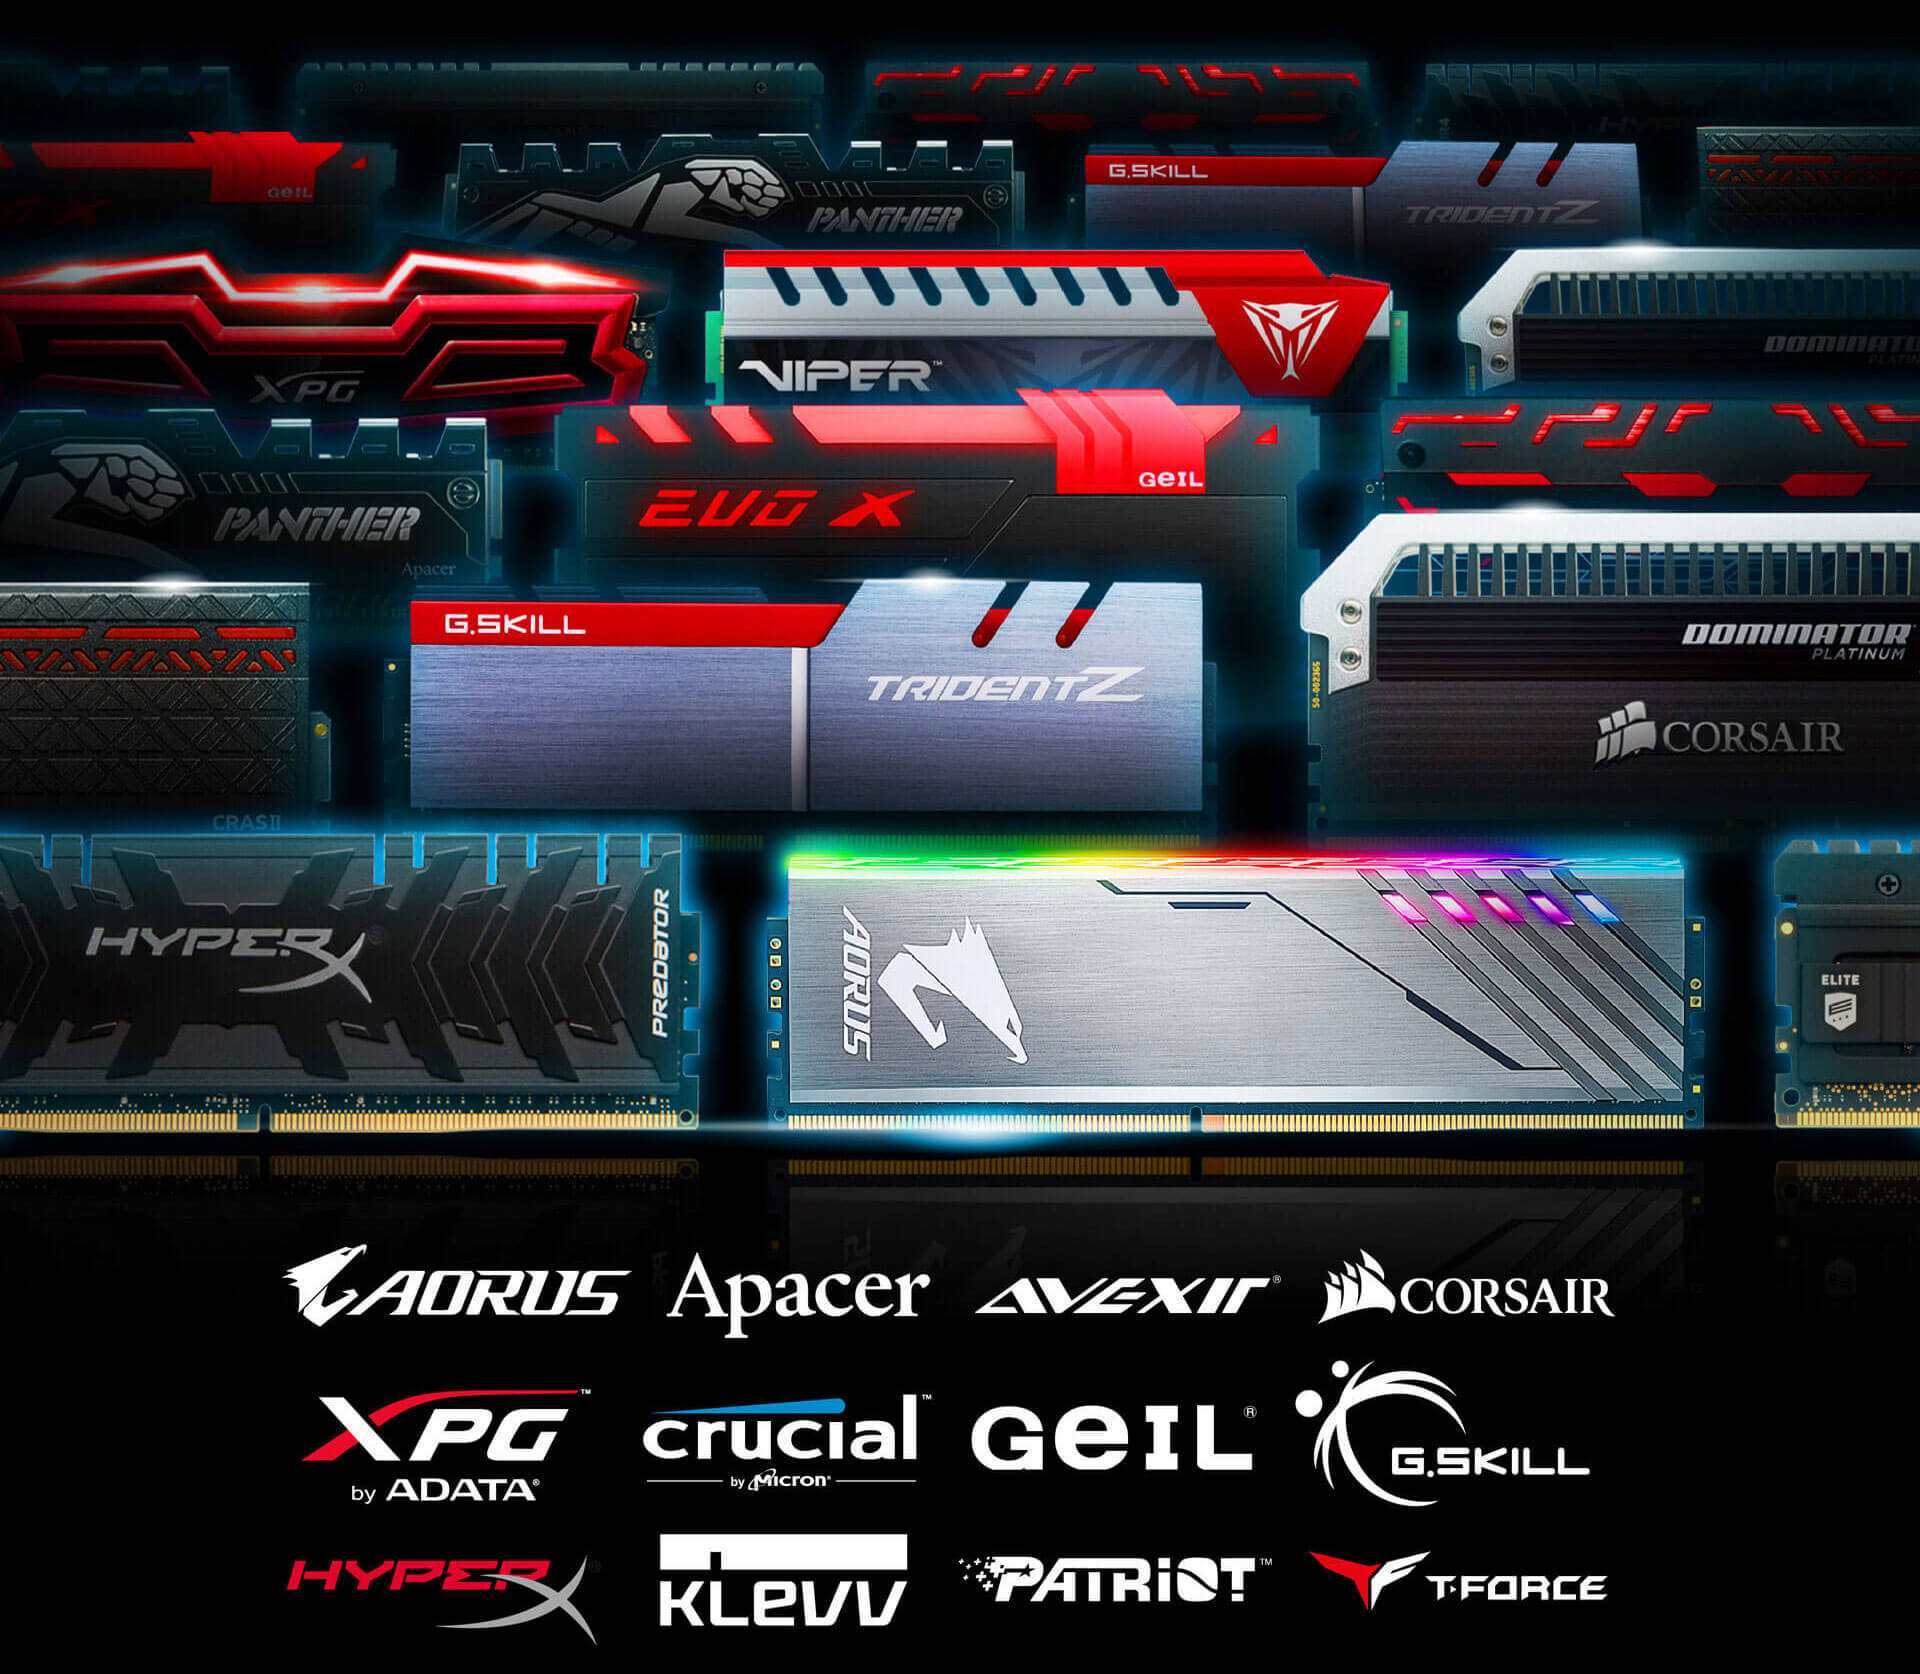 A variety of memory sticks from many brands as well as Logos for AORUS, Apacer, Avexir, Corsair, XPG by ADATA, Crucial, Geil, G.Skill, HyperX, KLEVV, Patriot and T-Force